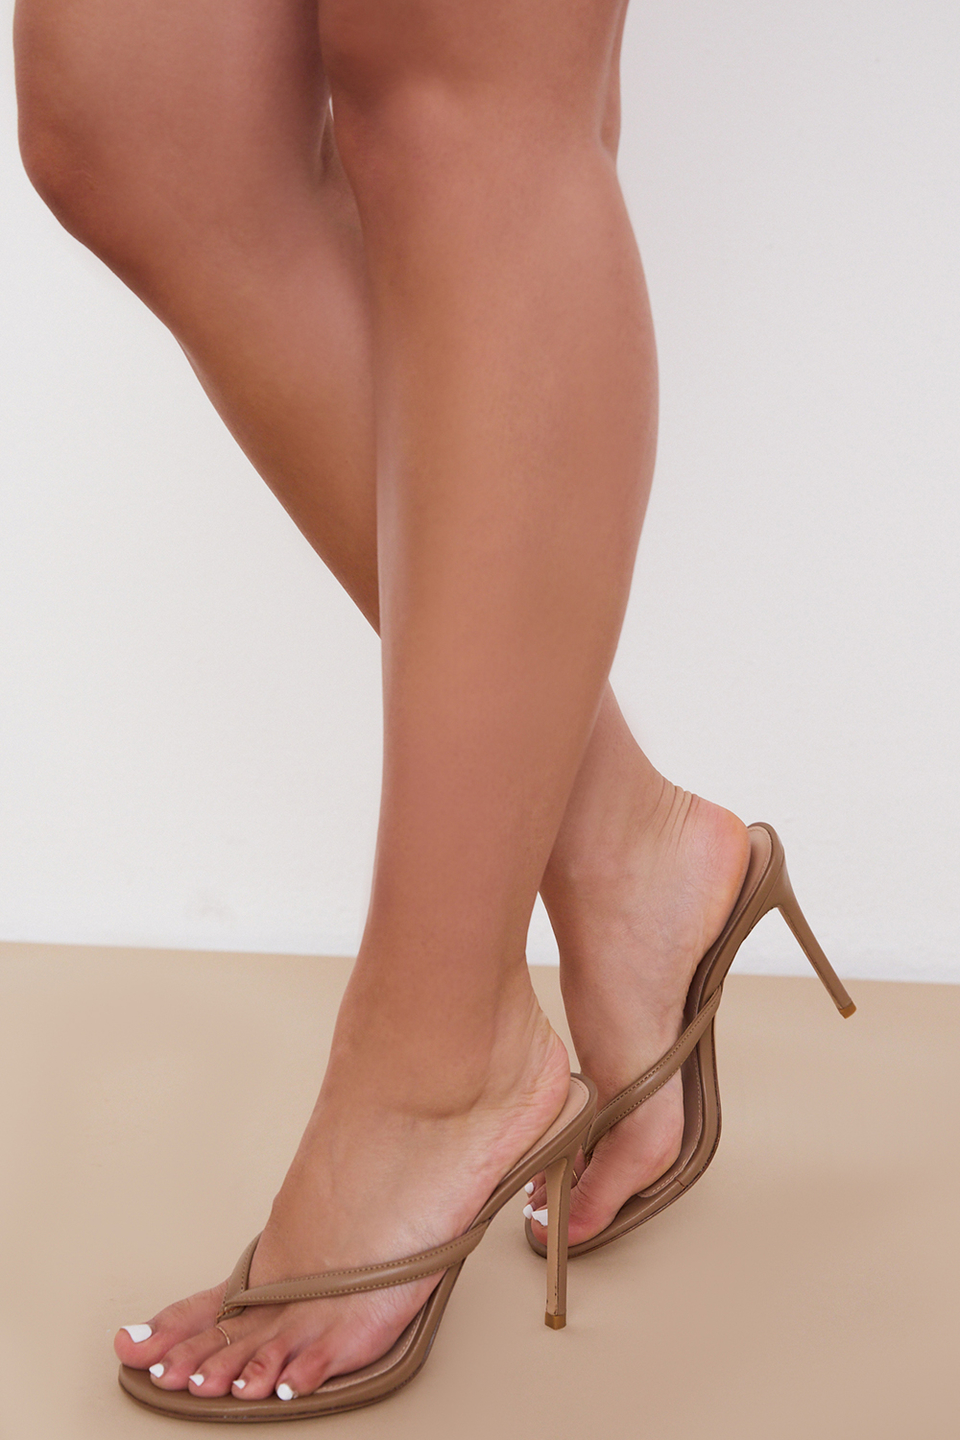 Lola Sunkissed Leather High Heel Thong Sandals